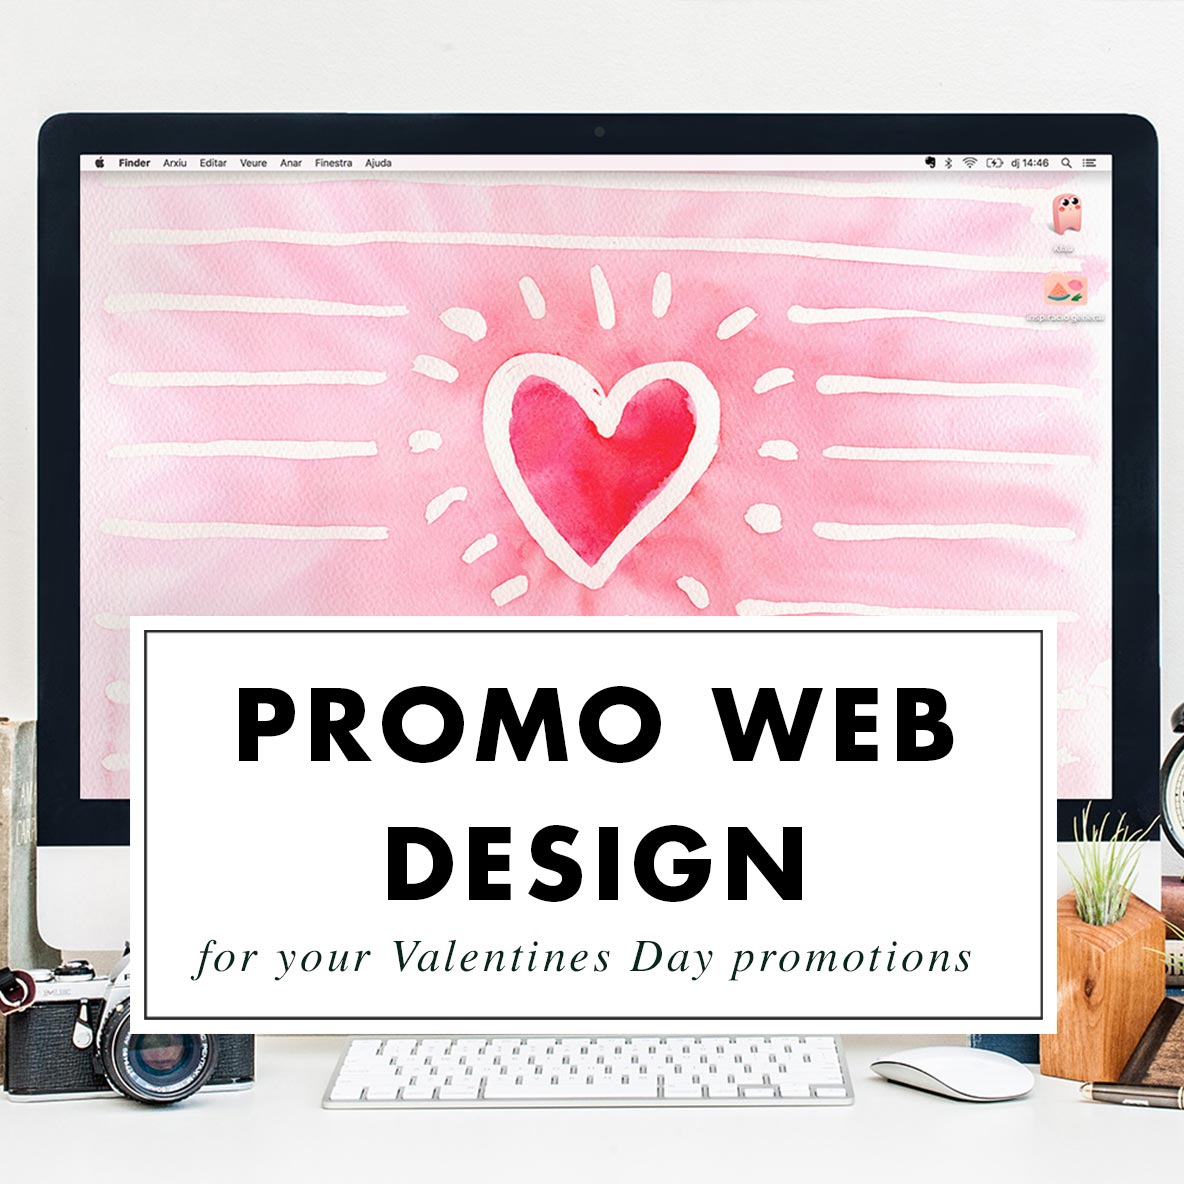 Valentines Day promotional landing page - Custom Design by Claudia Orengo from Heartmade.es - Design for Happiness